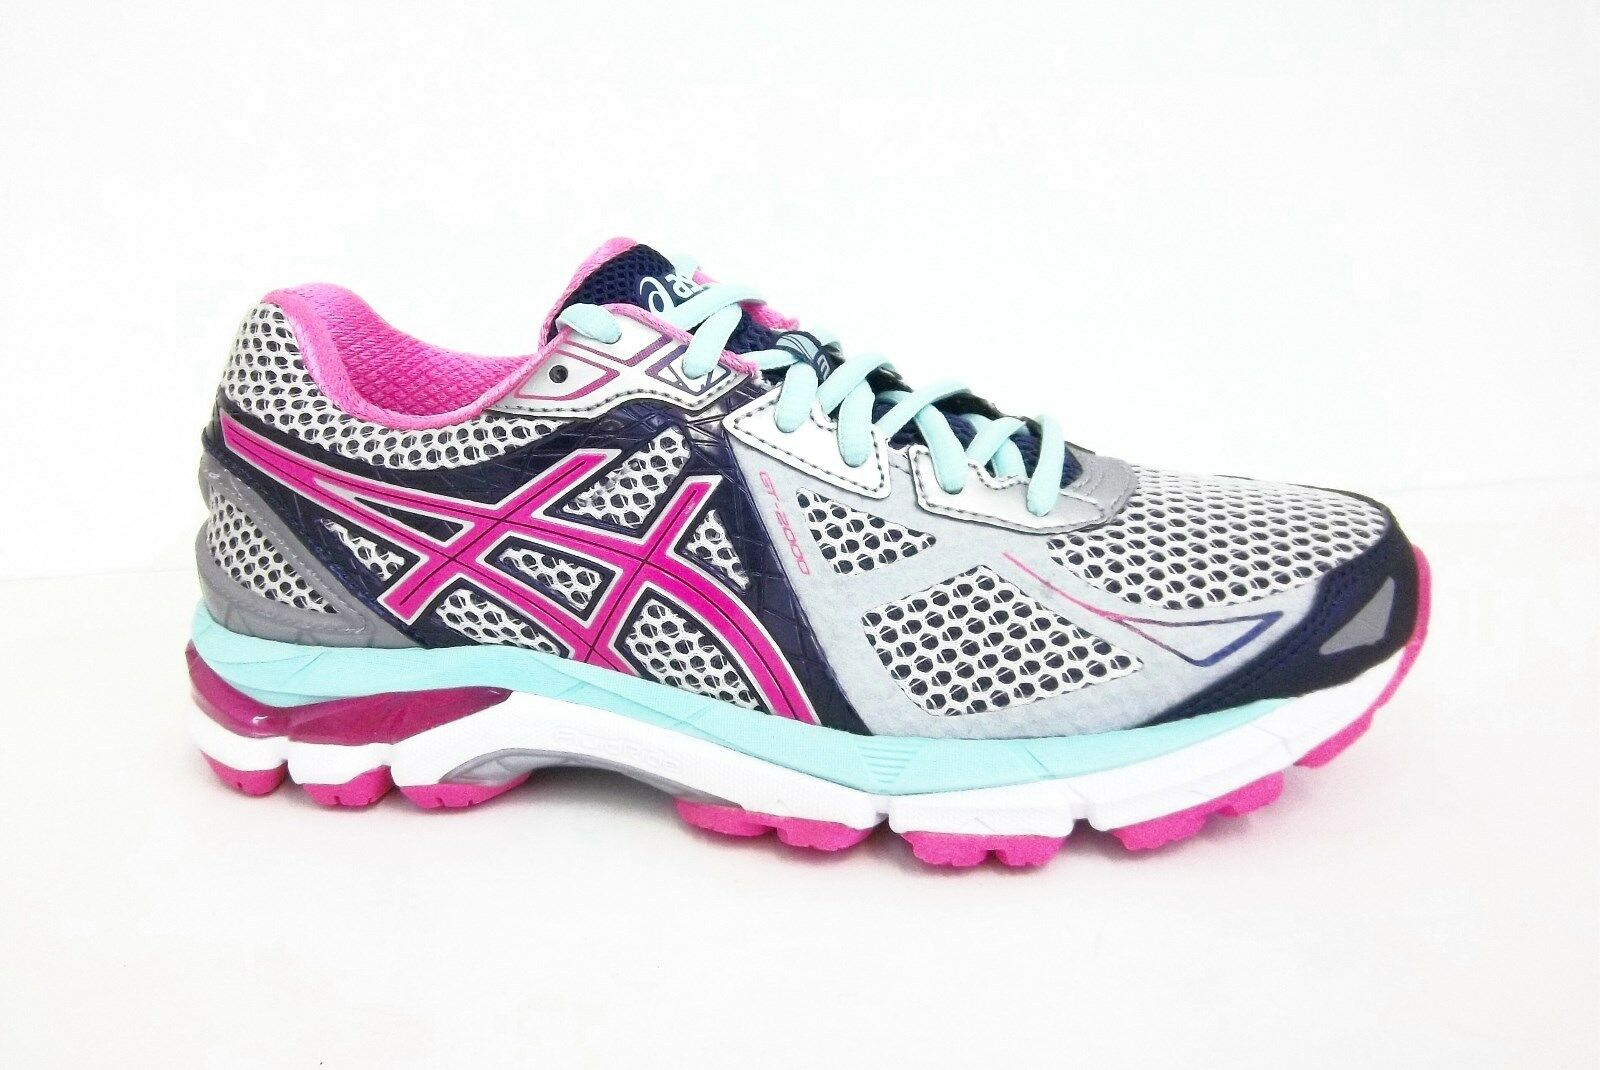 Asics Womens GT-2000 3 Running Shoe Lightning/Hot Pink/Navy Special limited time